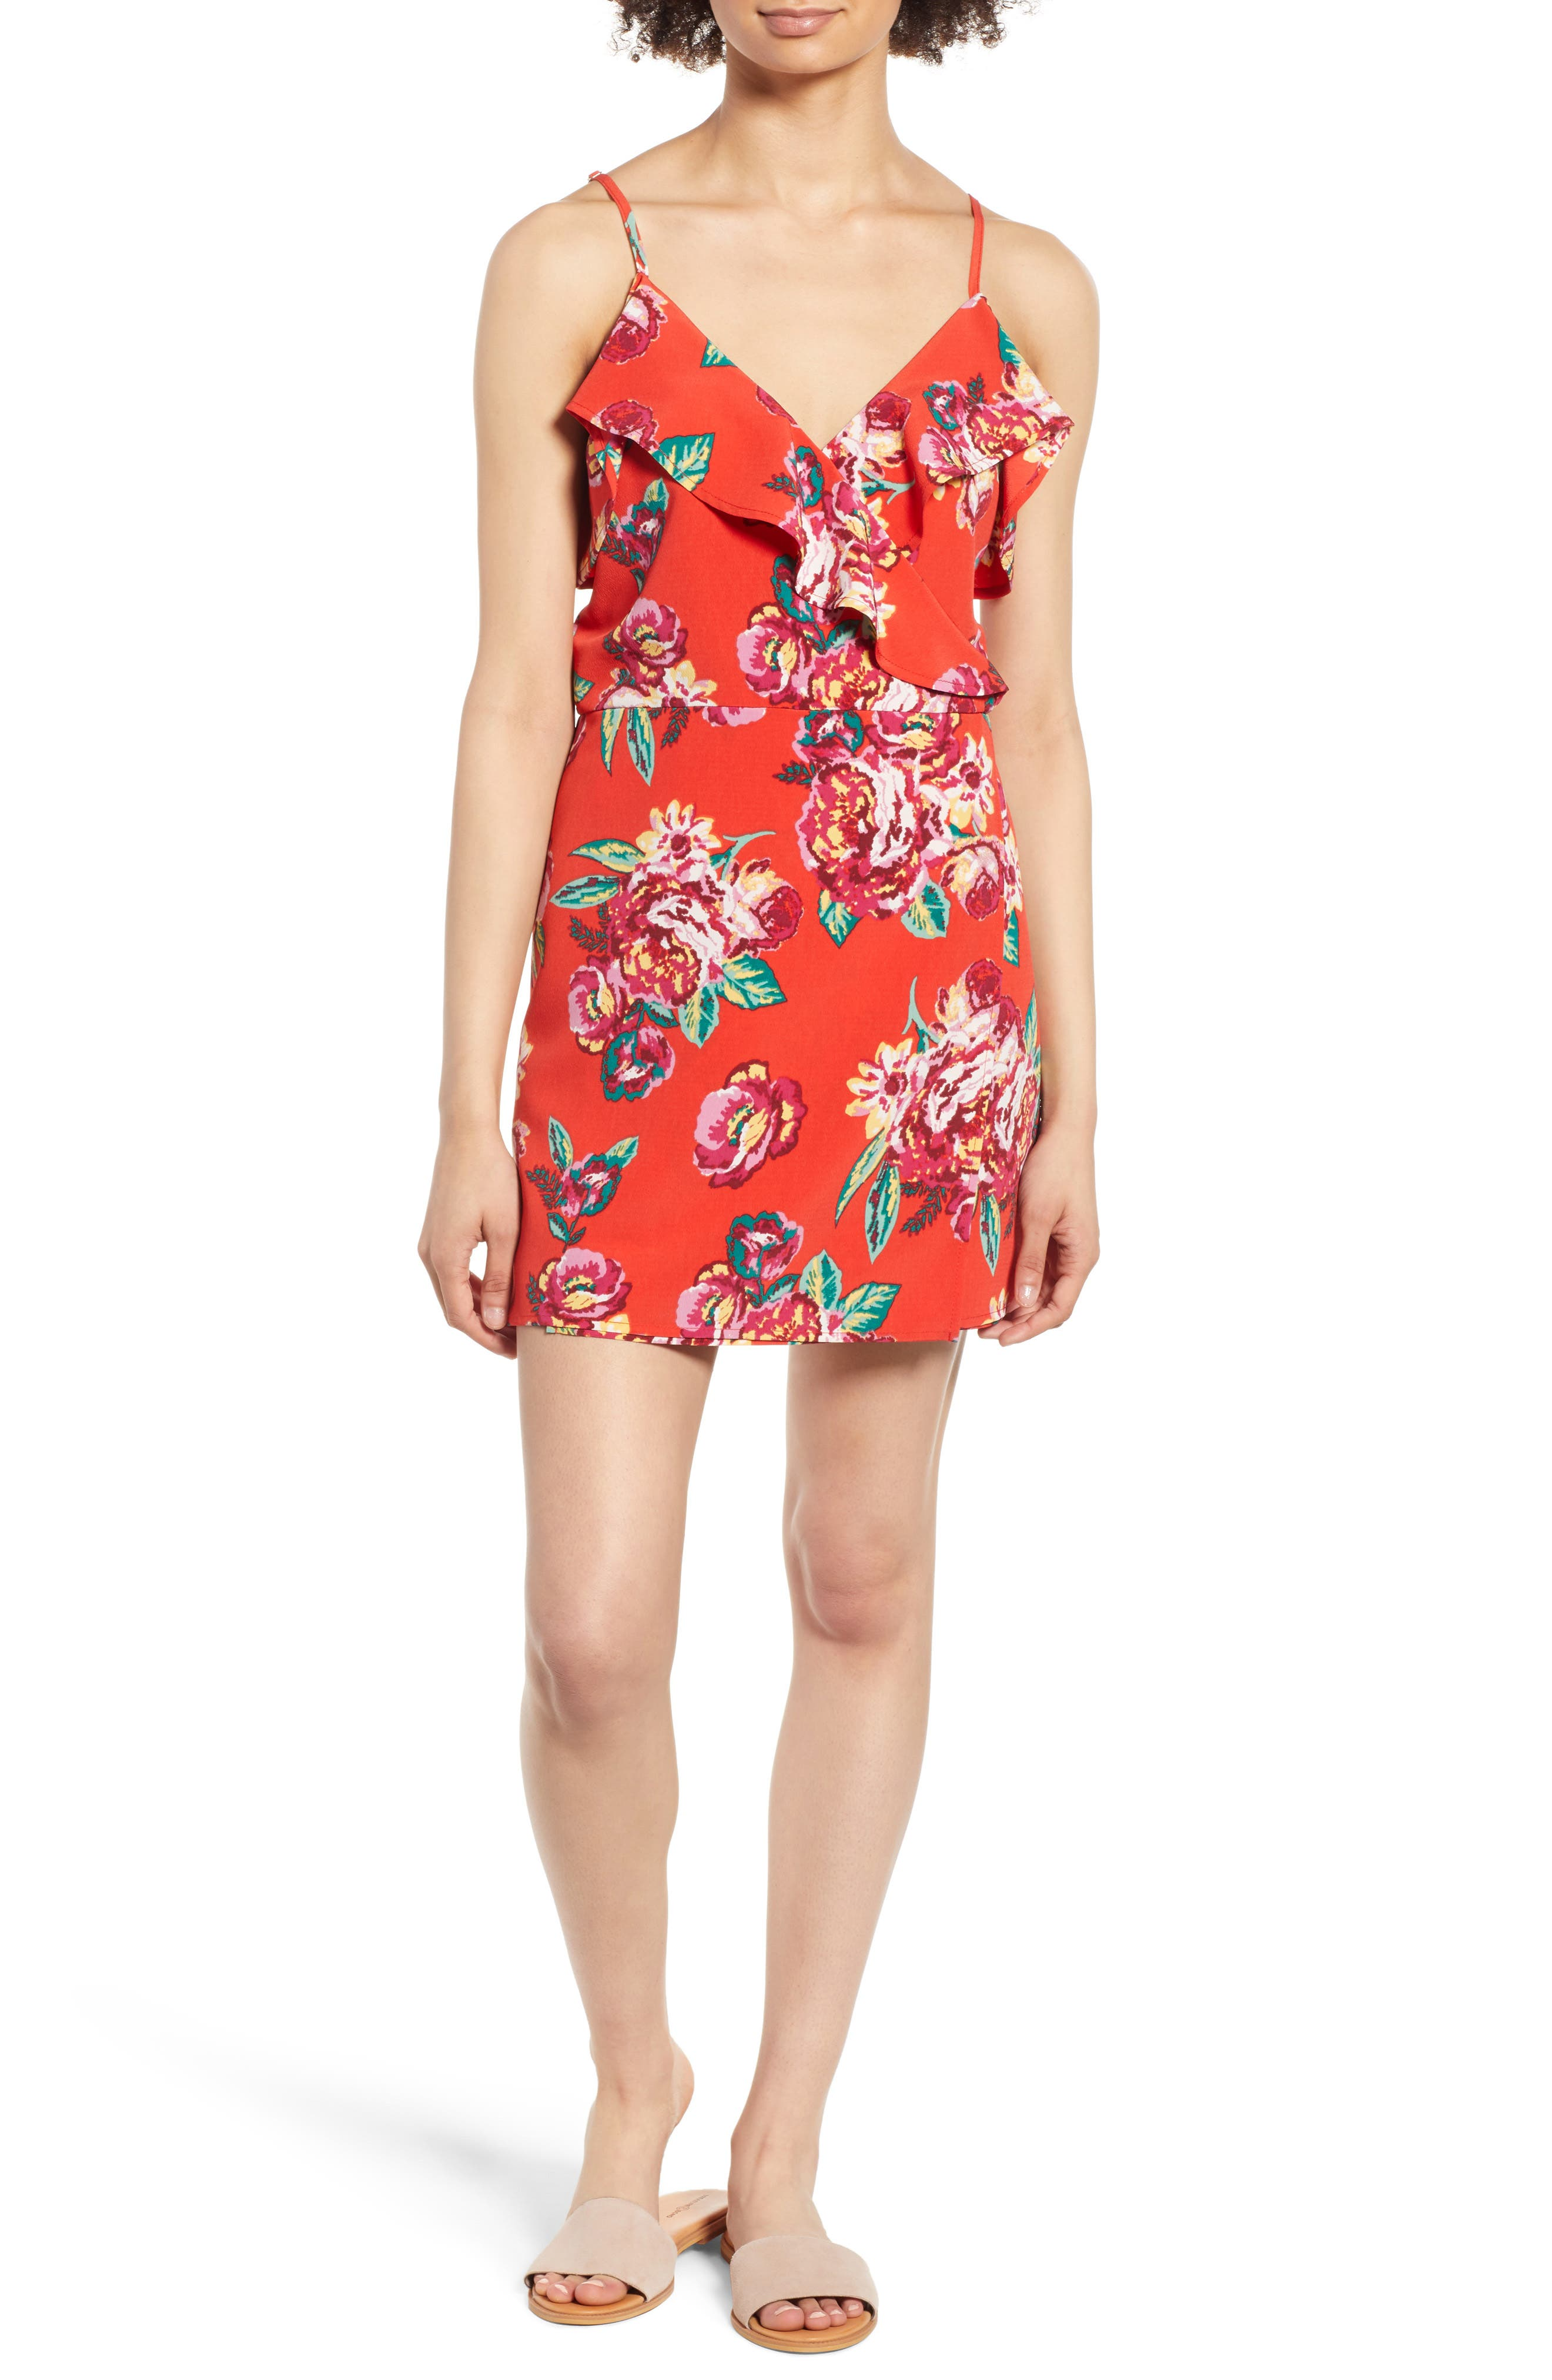 Floral Wrap Style Romper,                             Main thumbnail 1, color,                             Red Lipstick Summer Floral